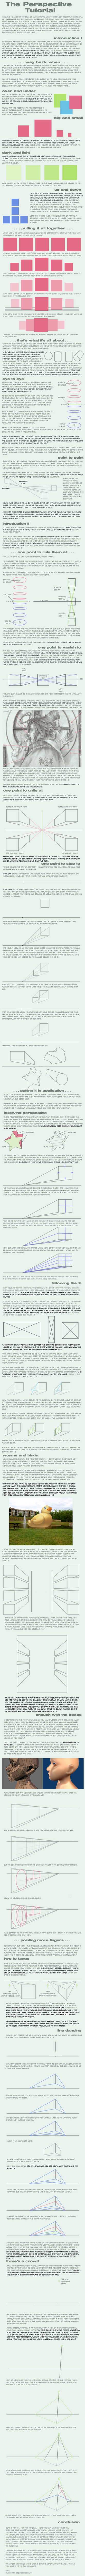 The Perspective Tutorial